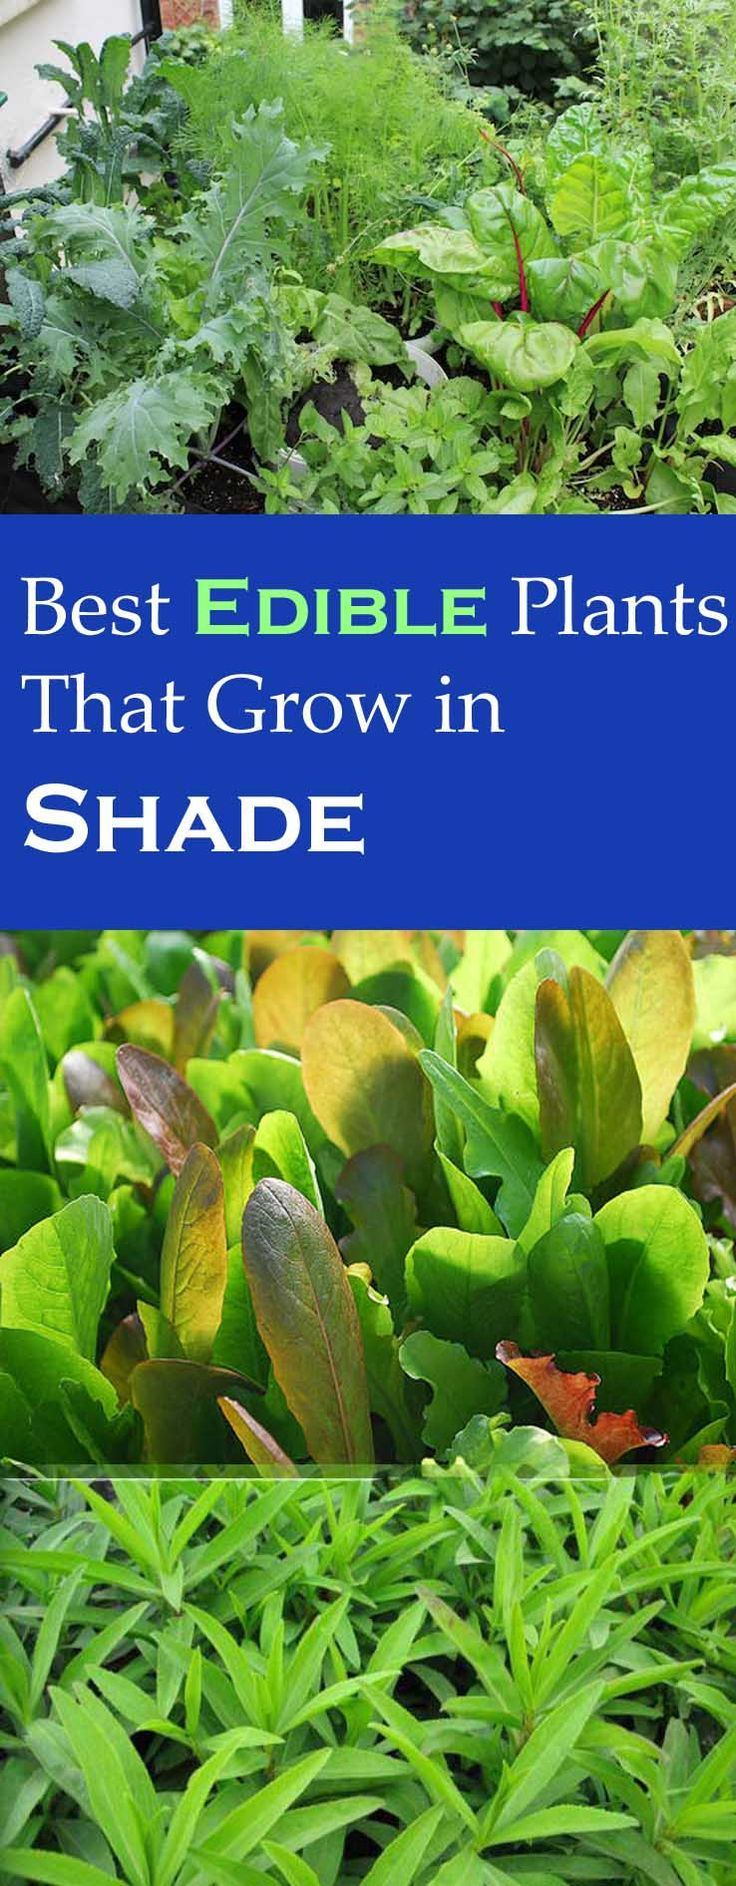 39 Best Images About Shade Gardens On Pinterest Gardens